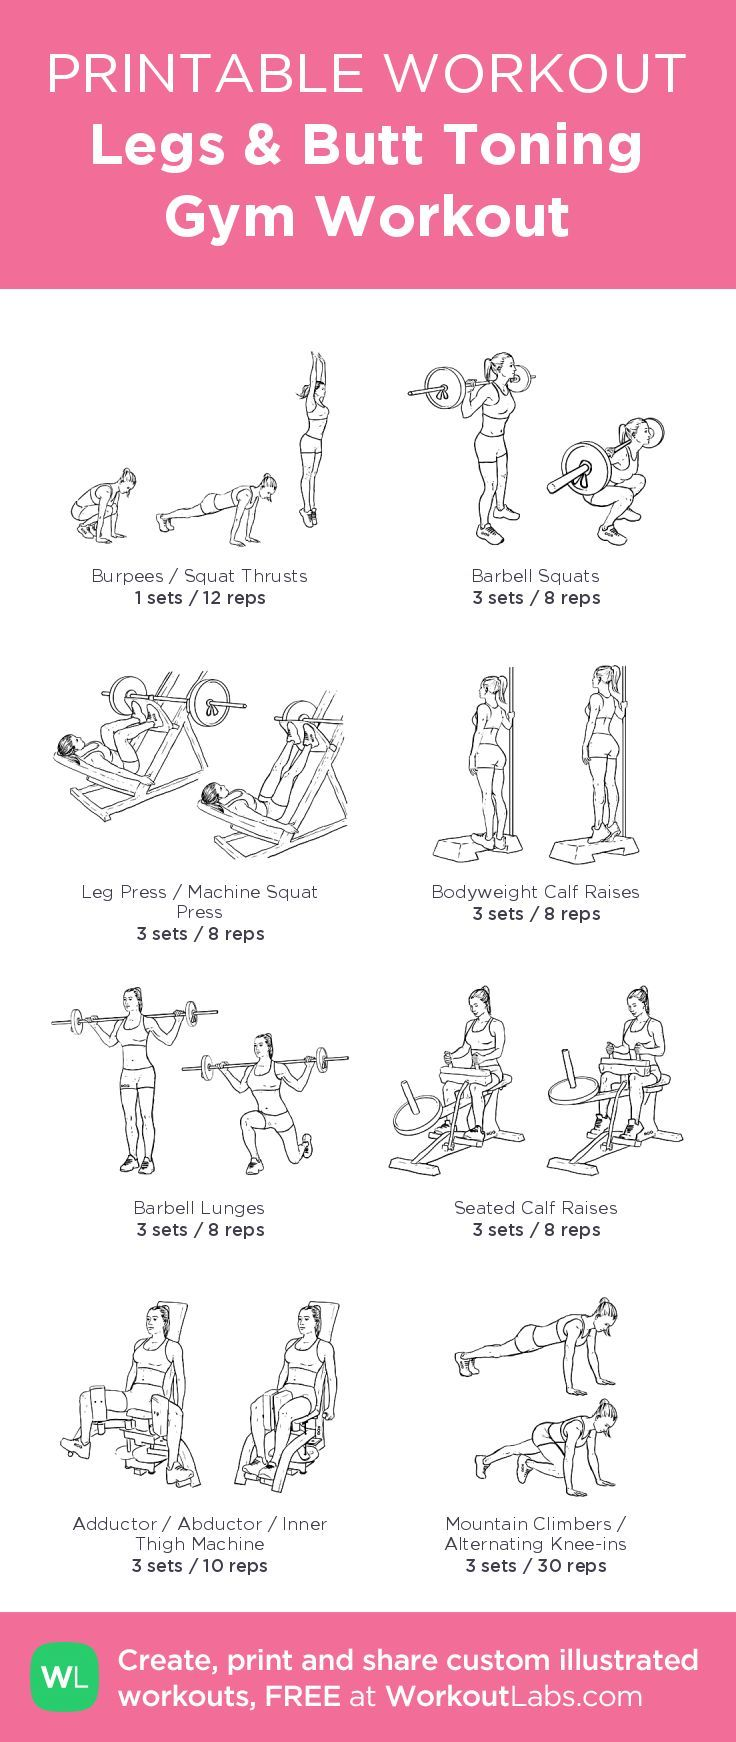 This is a photo of Handy Printable Gym Workout